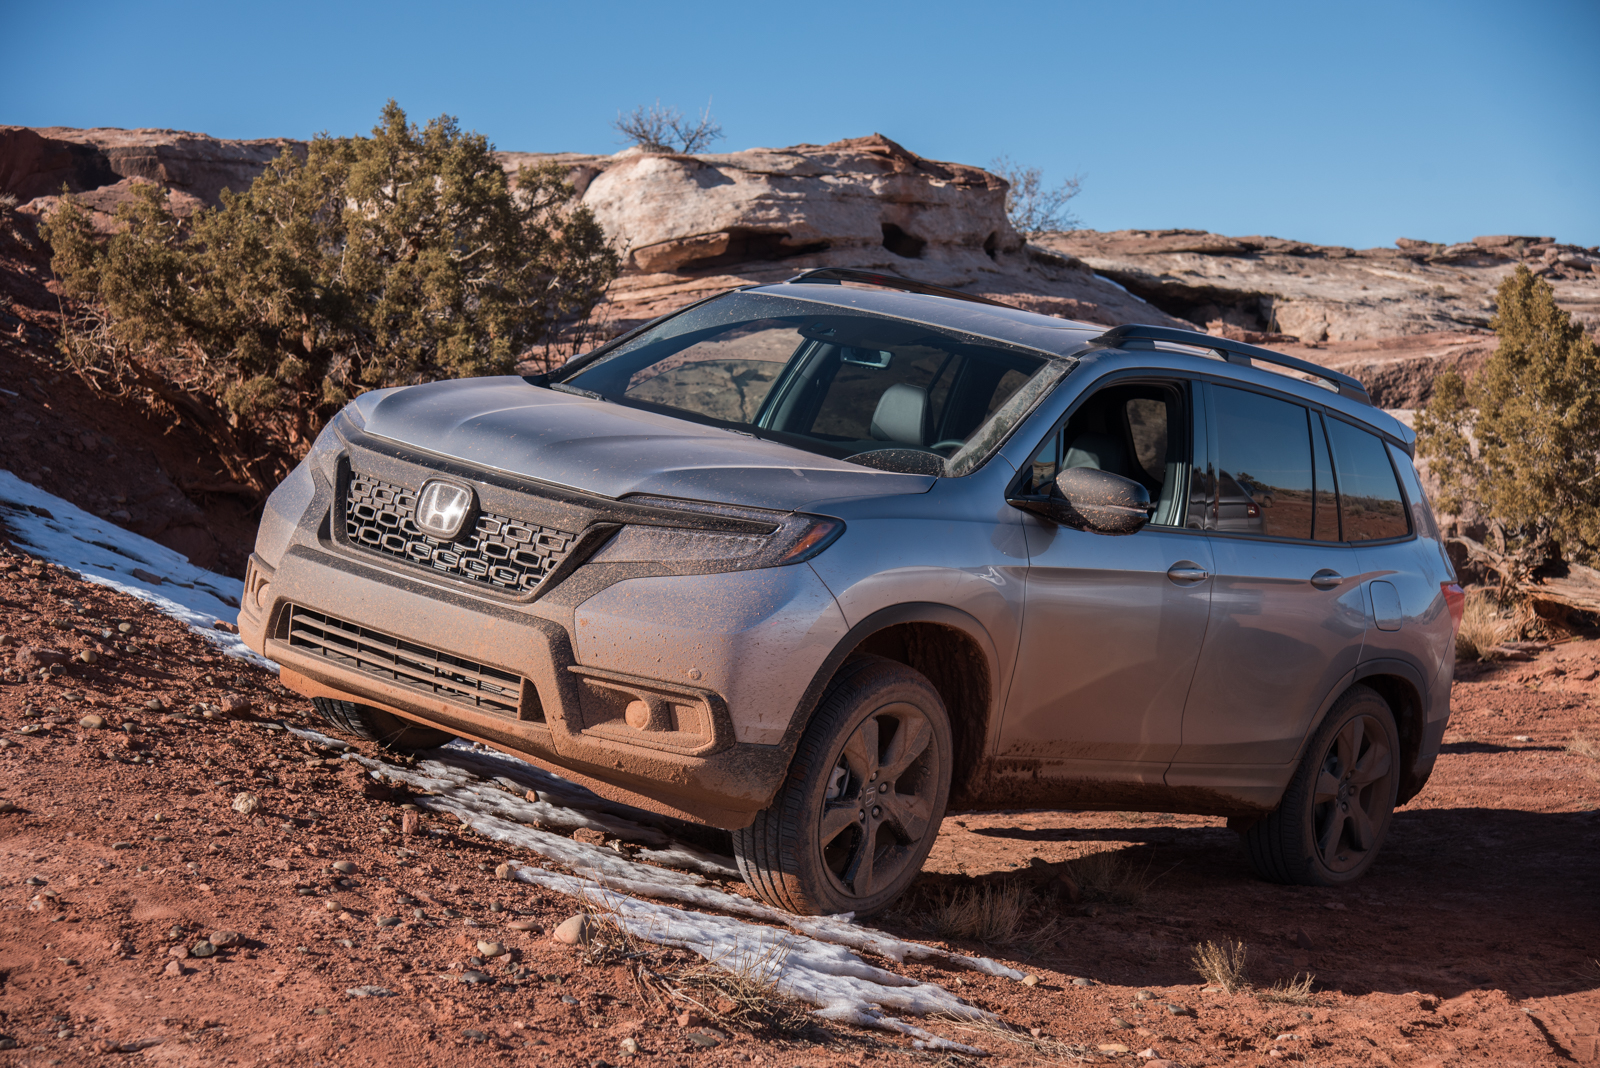 2019 Honda Passport Review and Video - 7th Gen Honda Forum - The #1